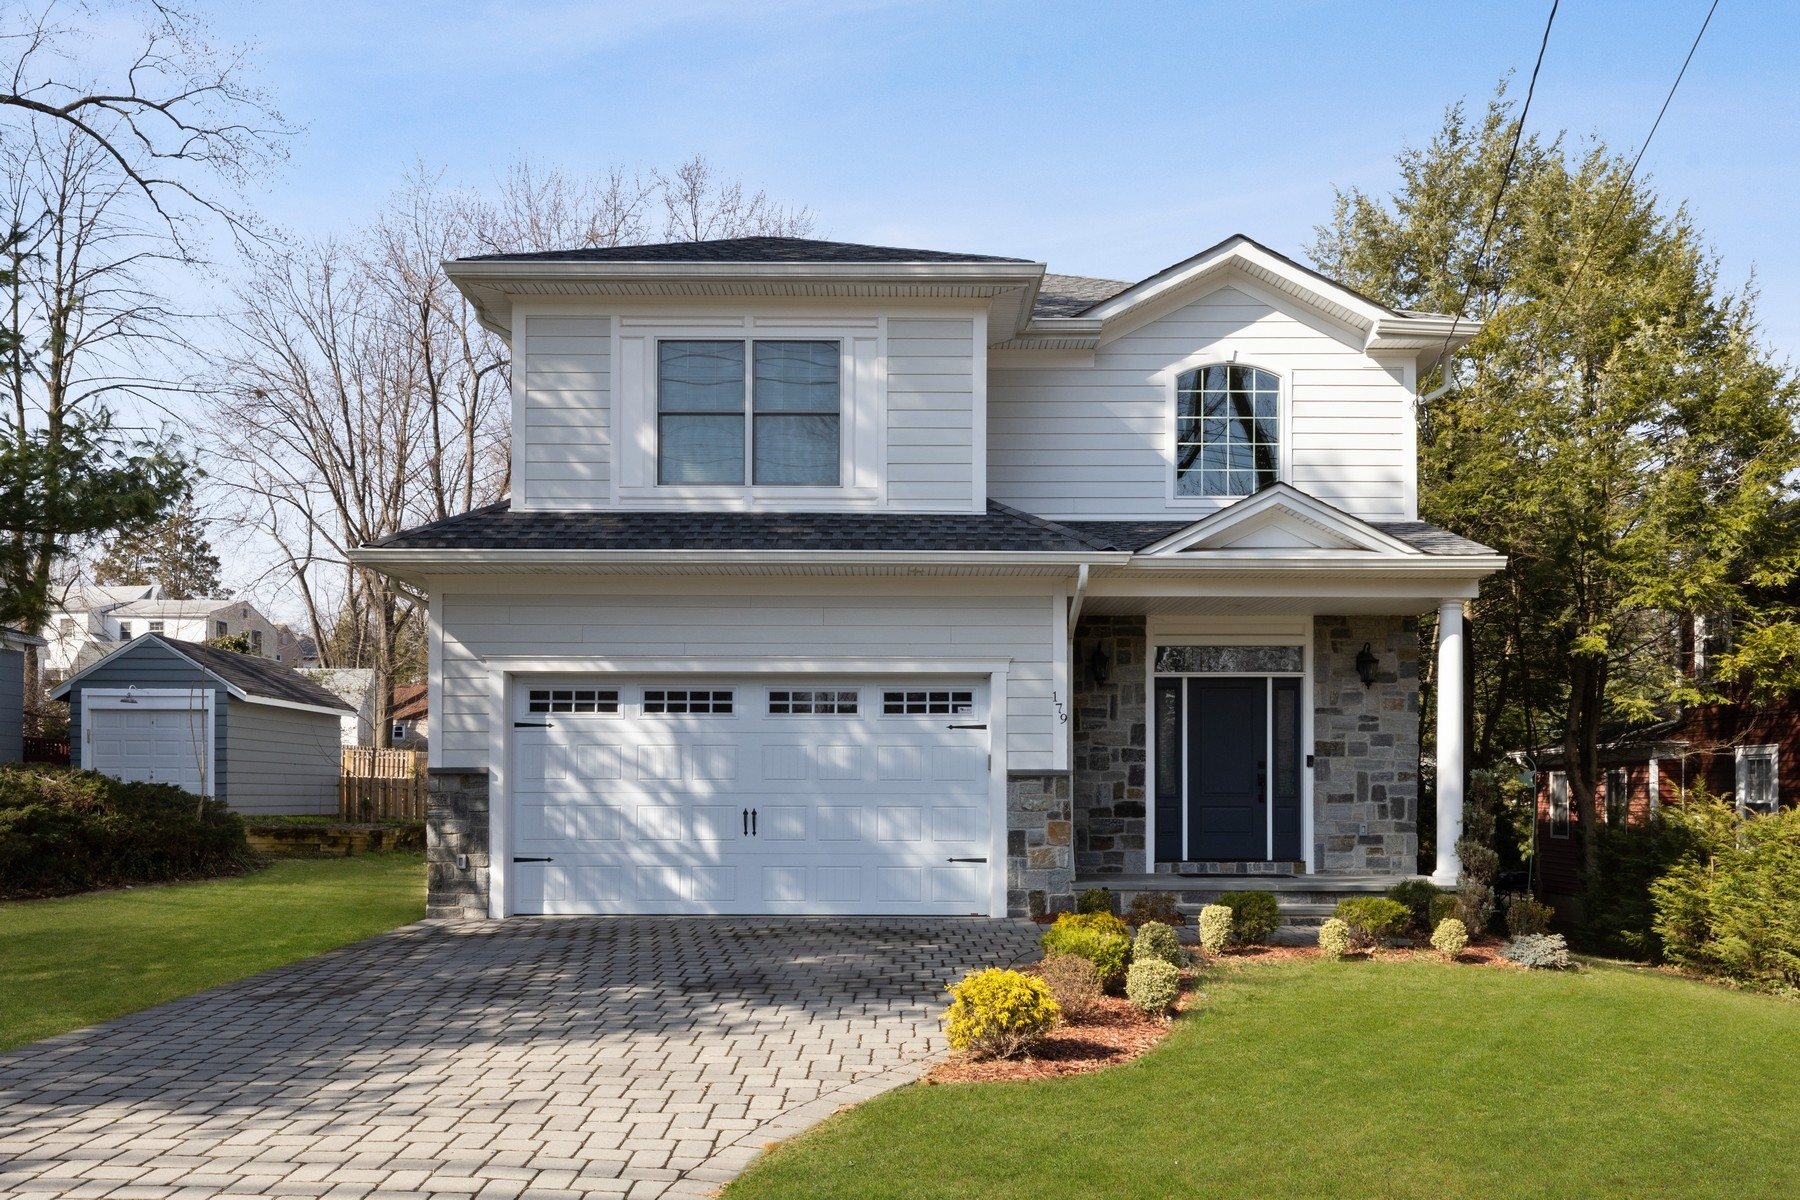 Single Family Homes for Sale at Stunning! 179 Riveredge Rd Tenafly, New Jersey 07670 United States